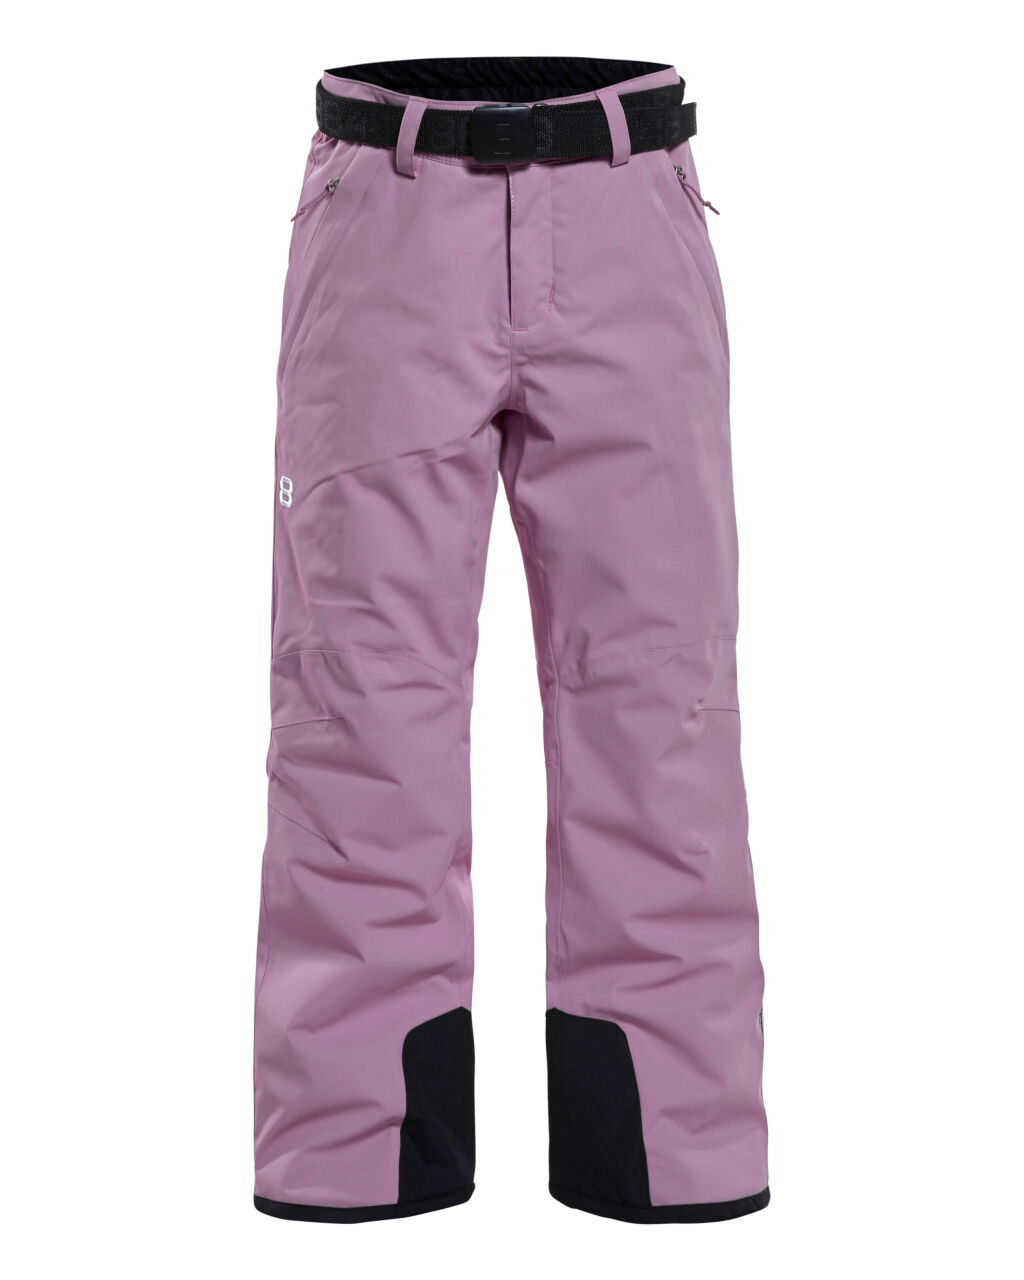 8848 Altitude Grace Pants Jr